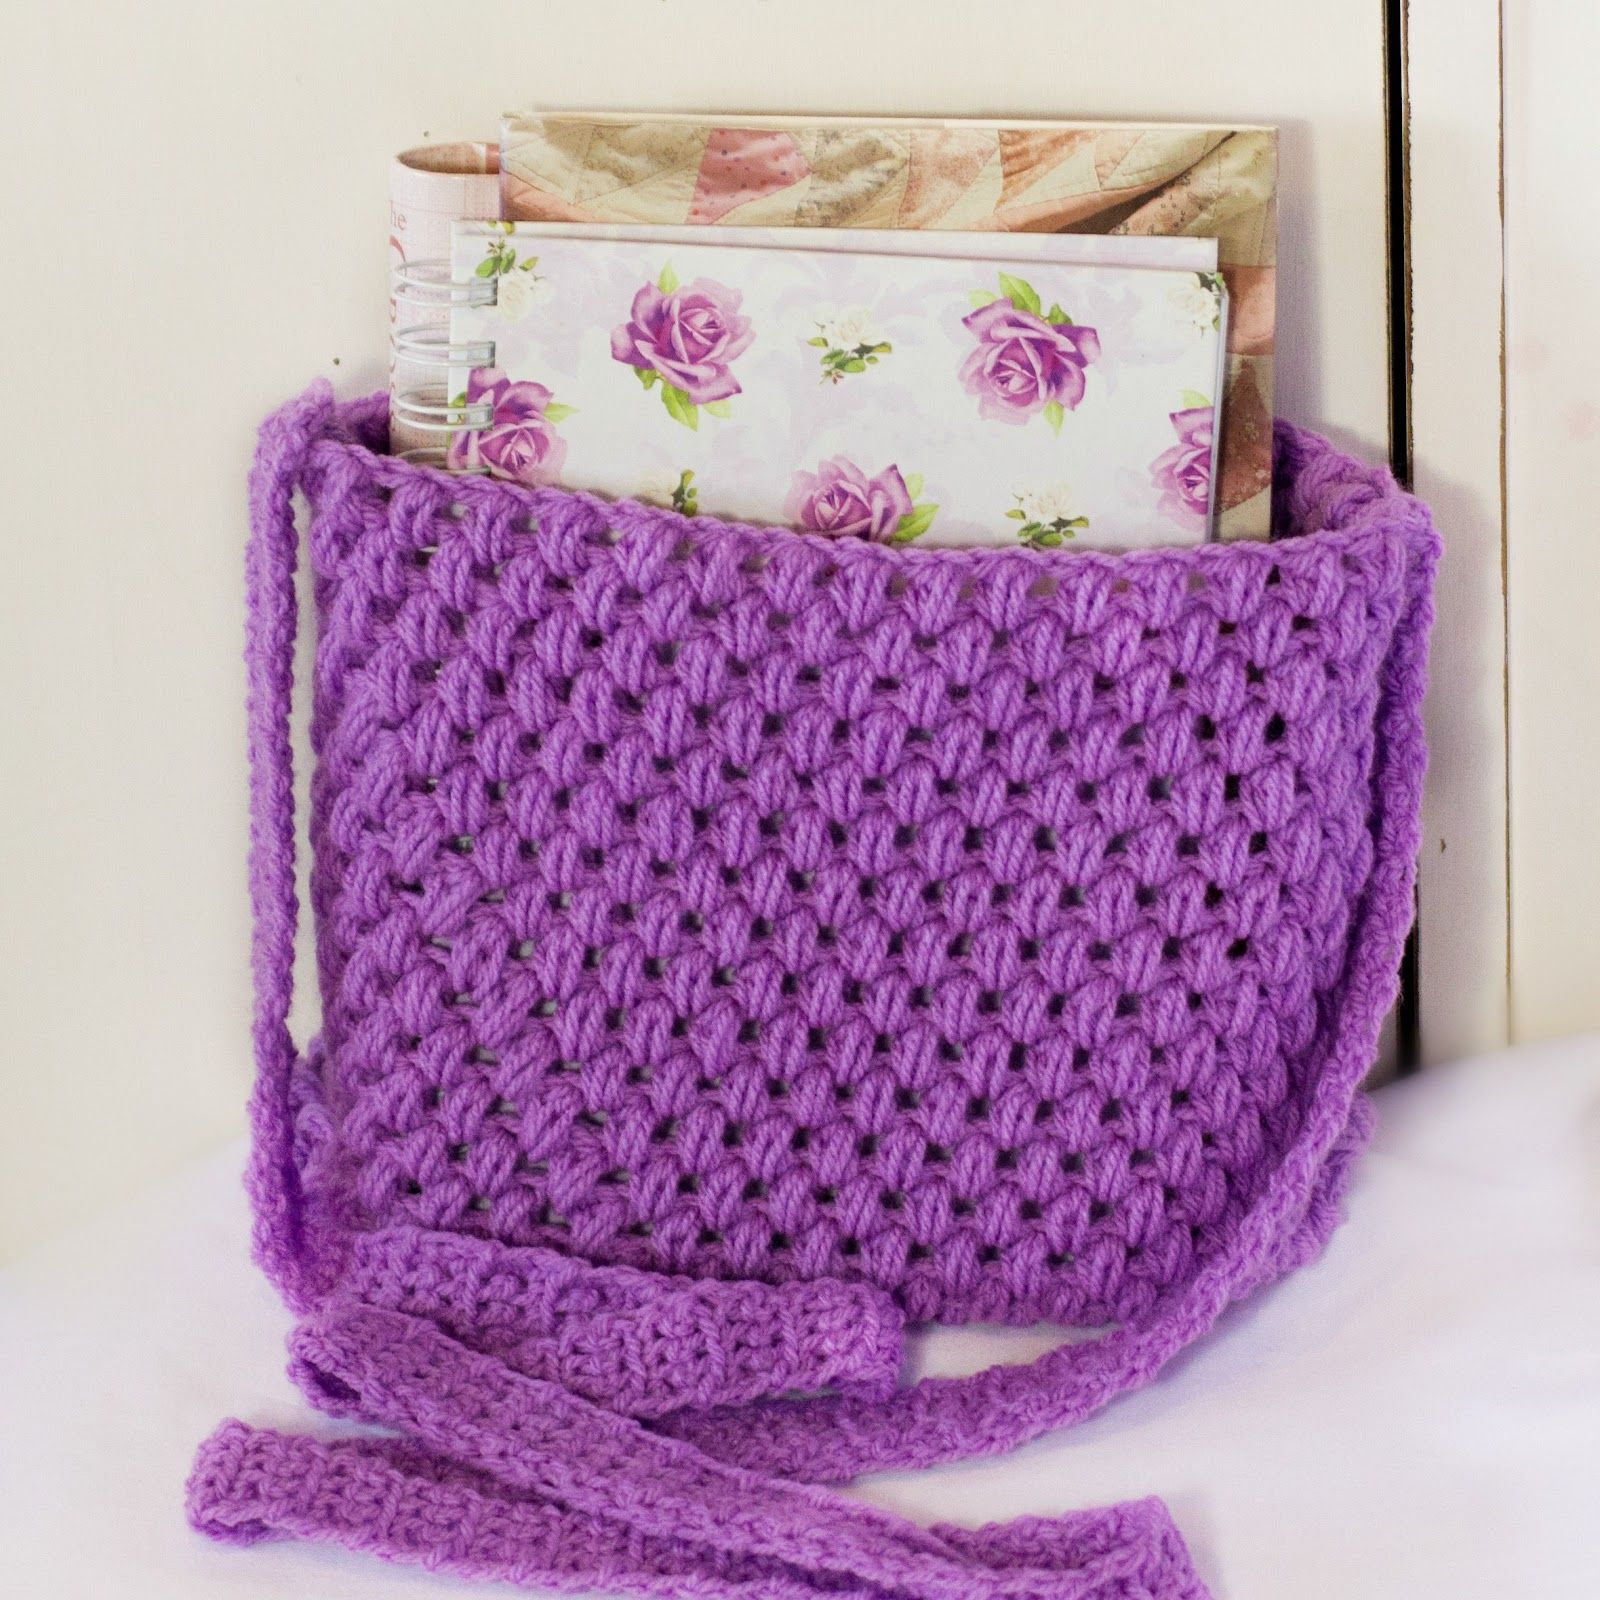 Easy tote bag crochet the pattern includes video to new stitch easy tote bag crochet the pattern includes video to new stitch and tutorial to add bankloansurffo Choice Image